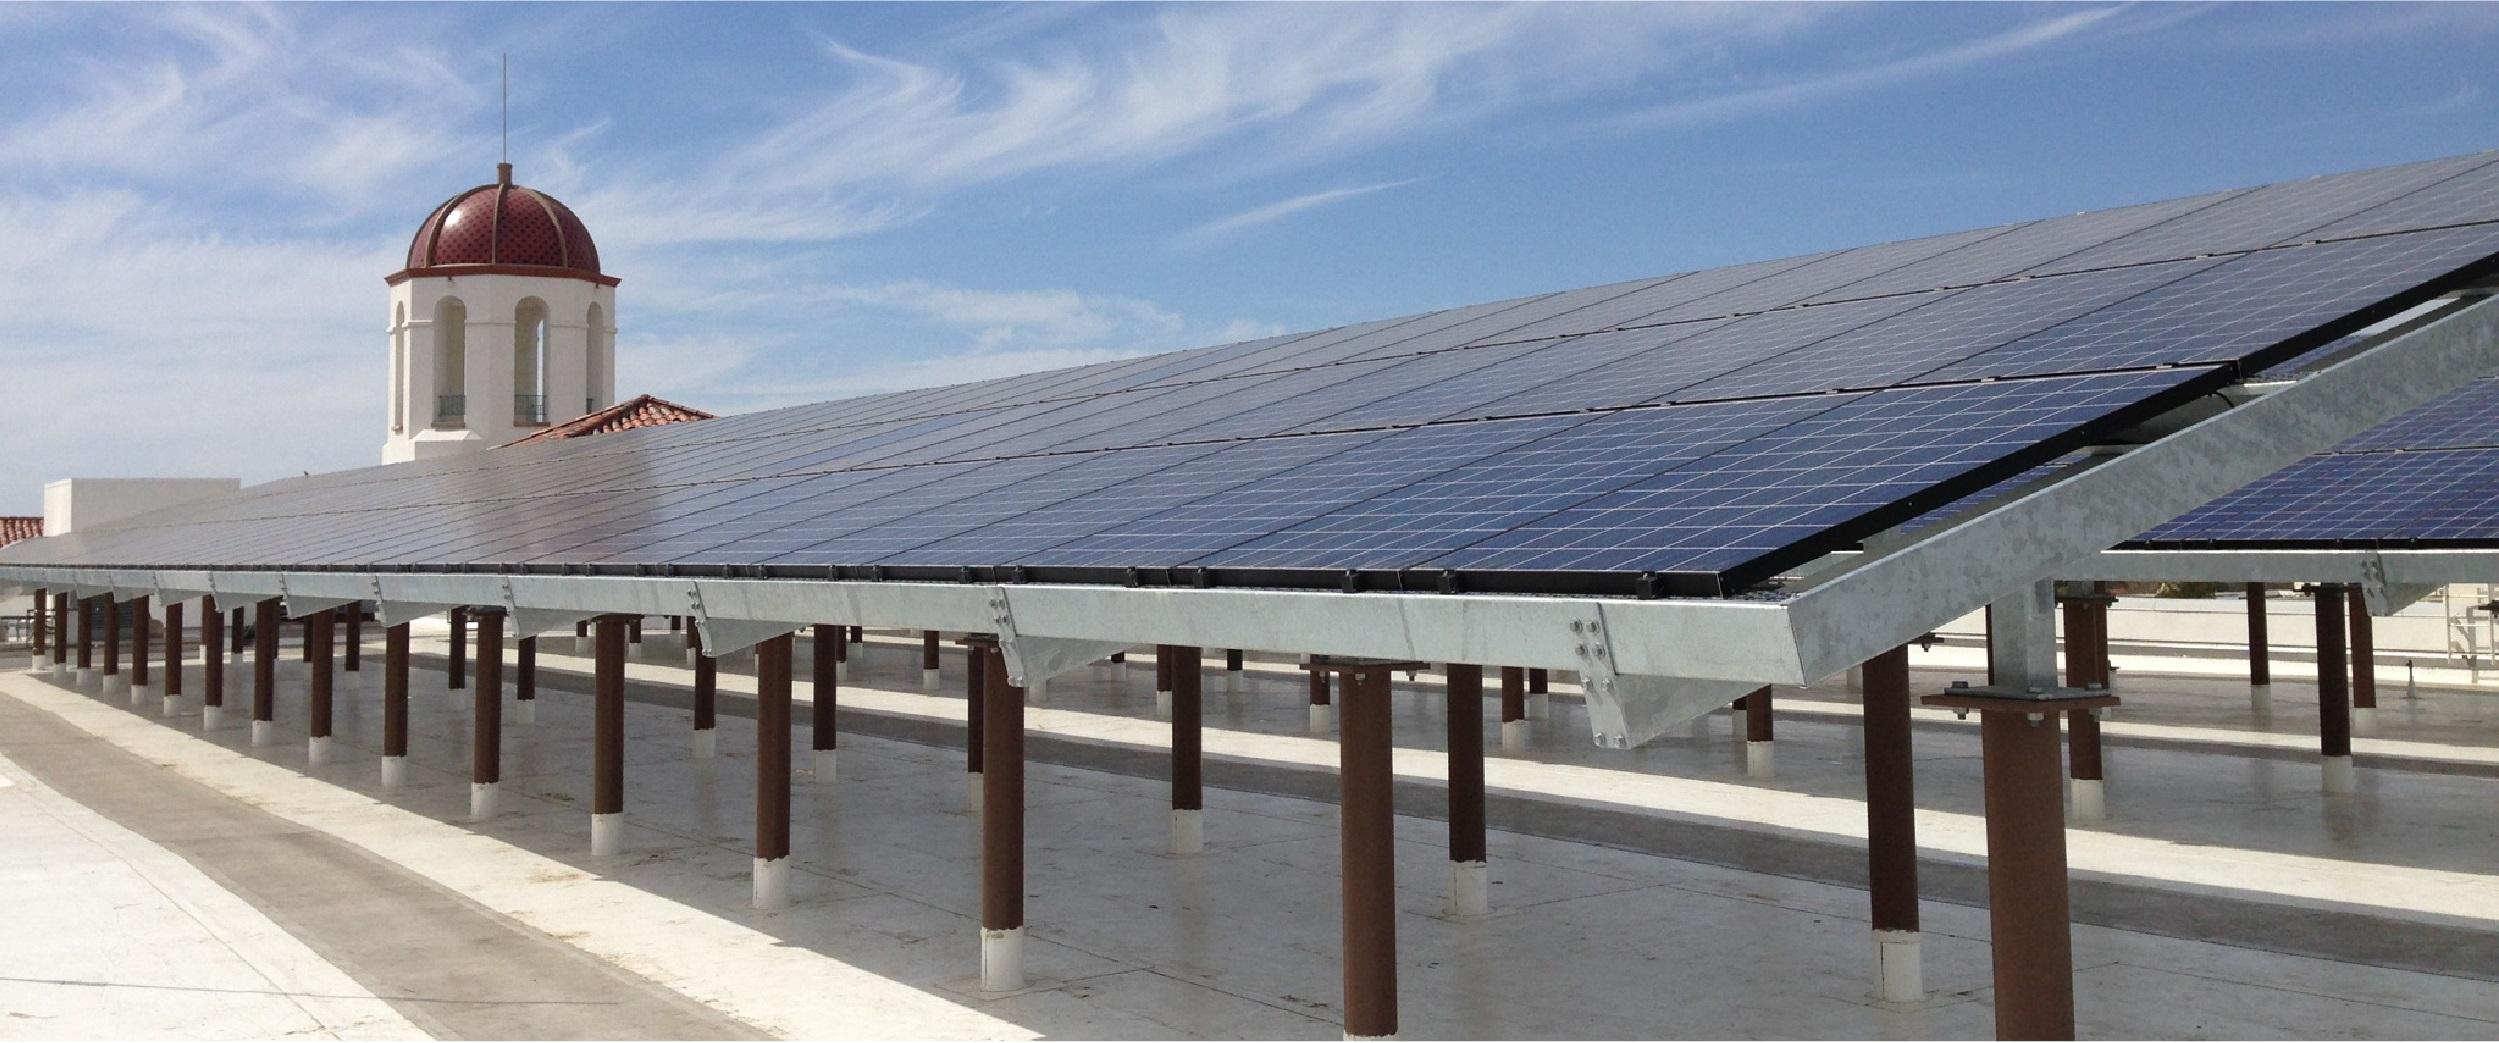 Aztec Student Union rooftop and solar